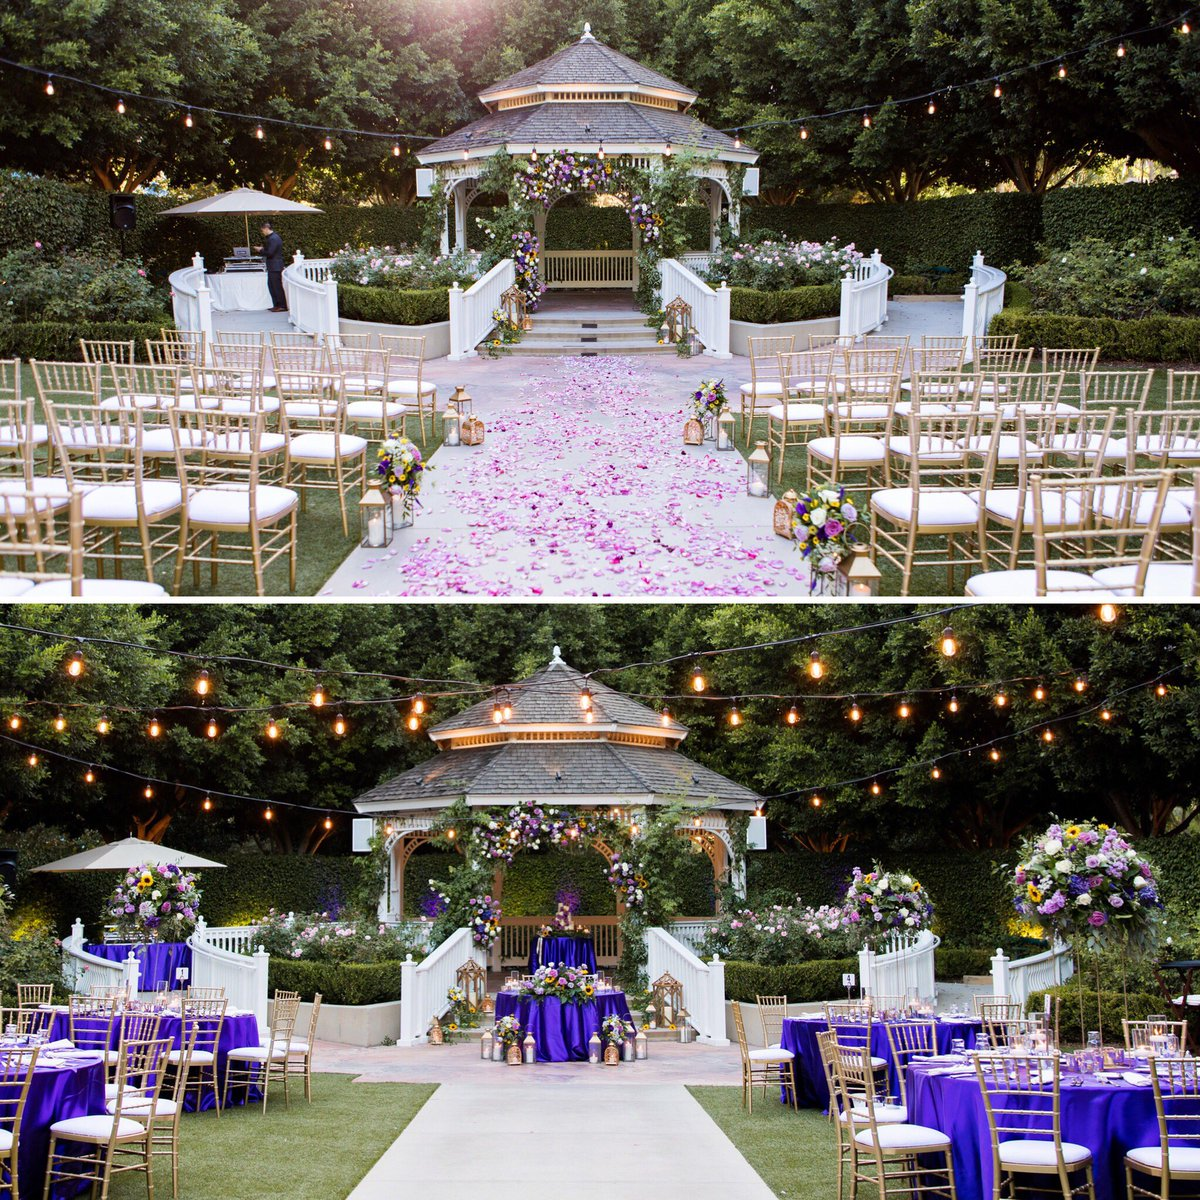 Disney Weddings On Twitter A Stunning Transformation Do You